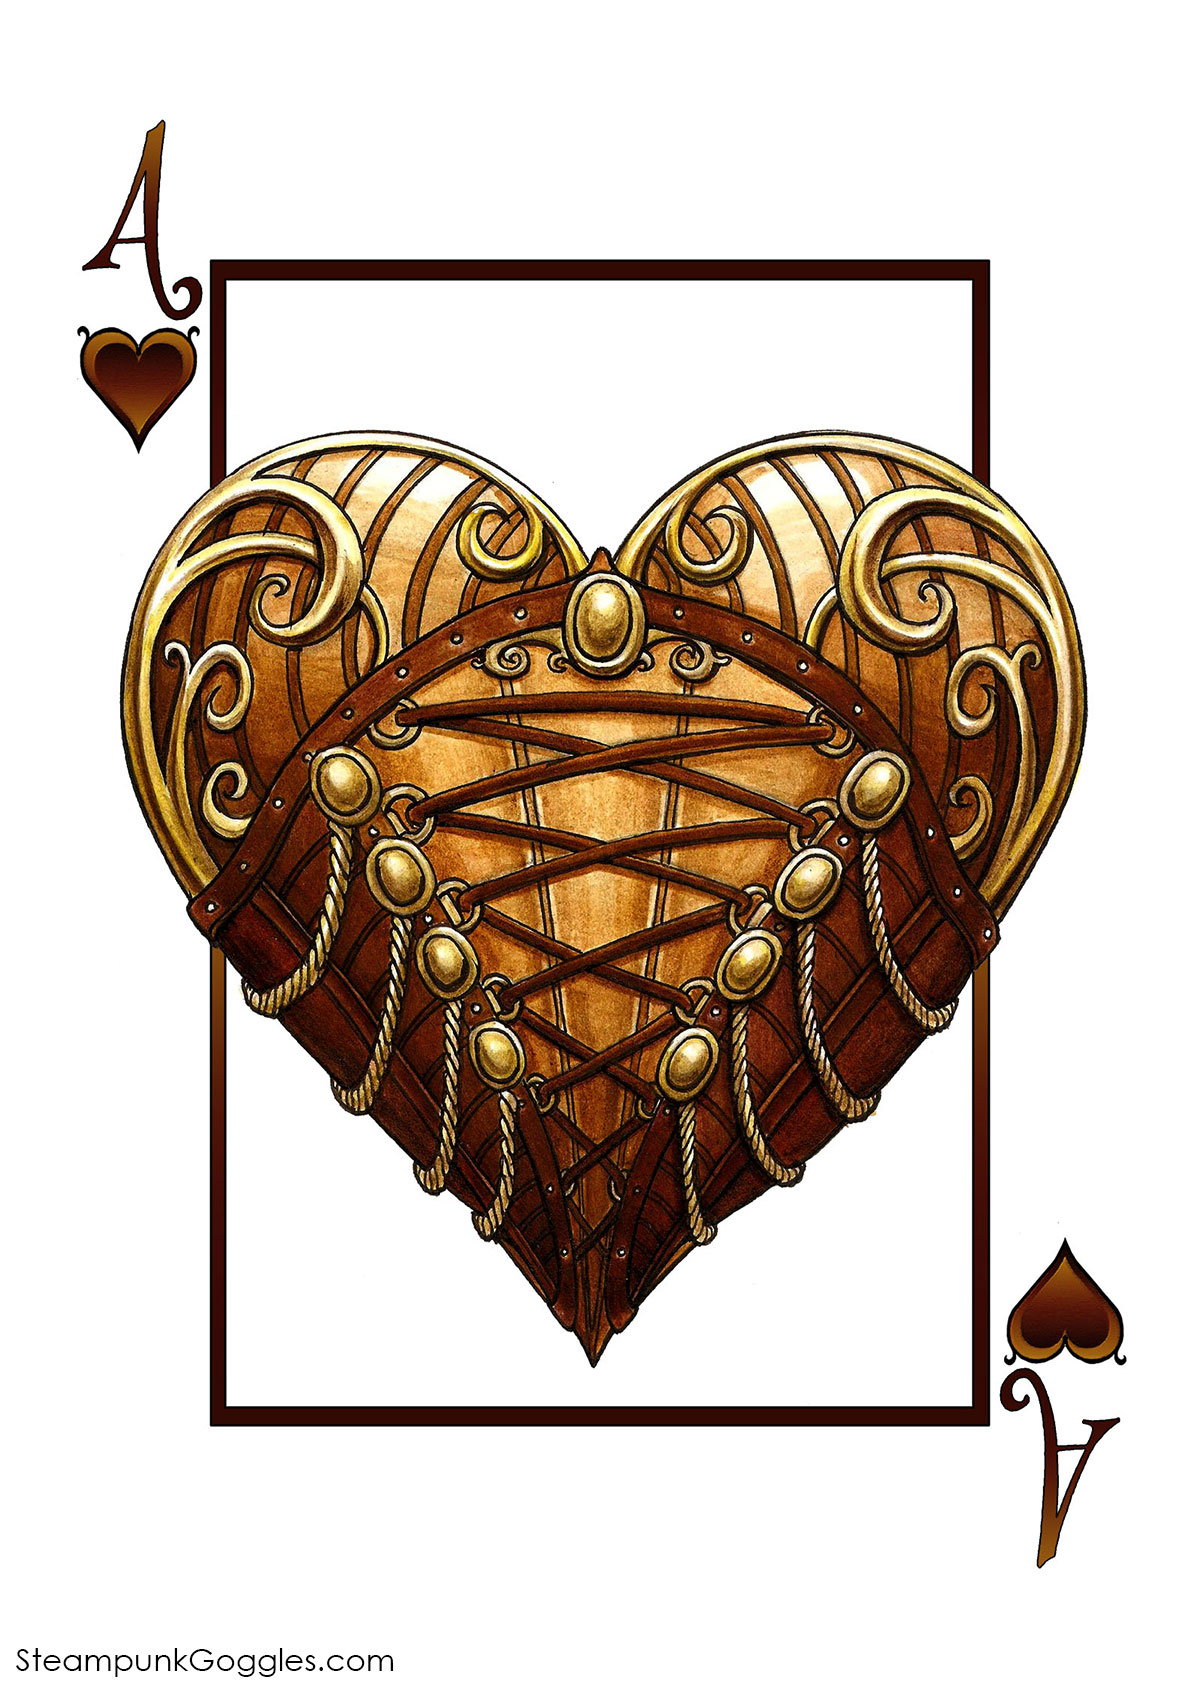 Steampunkgoggles Hearts Ace 1200 Max Playing Cards